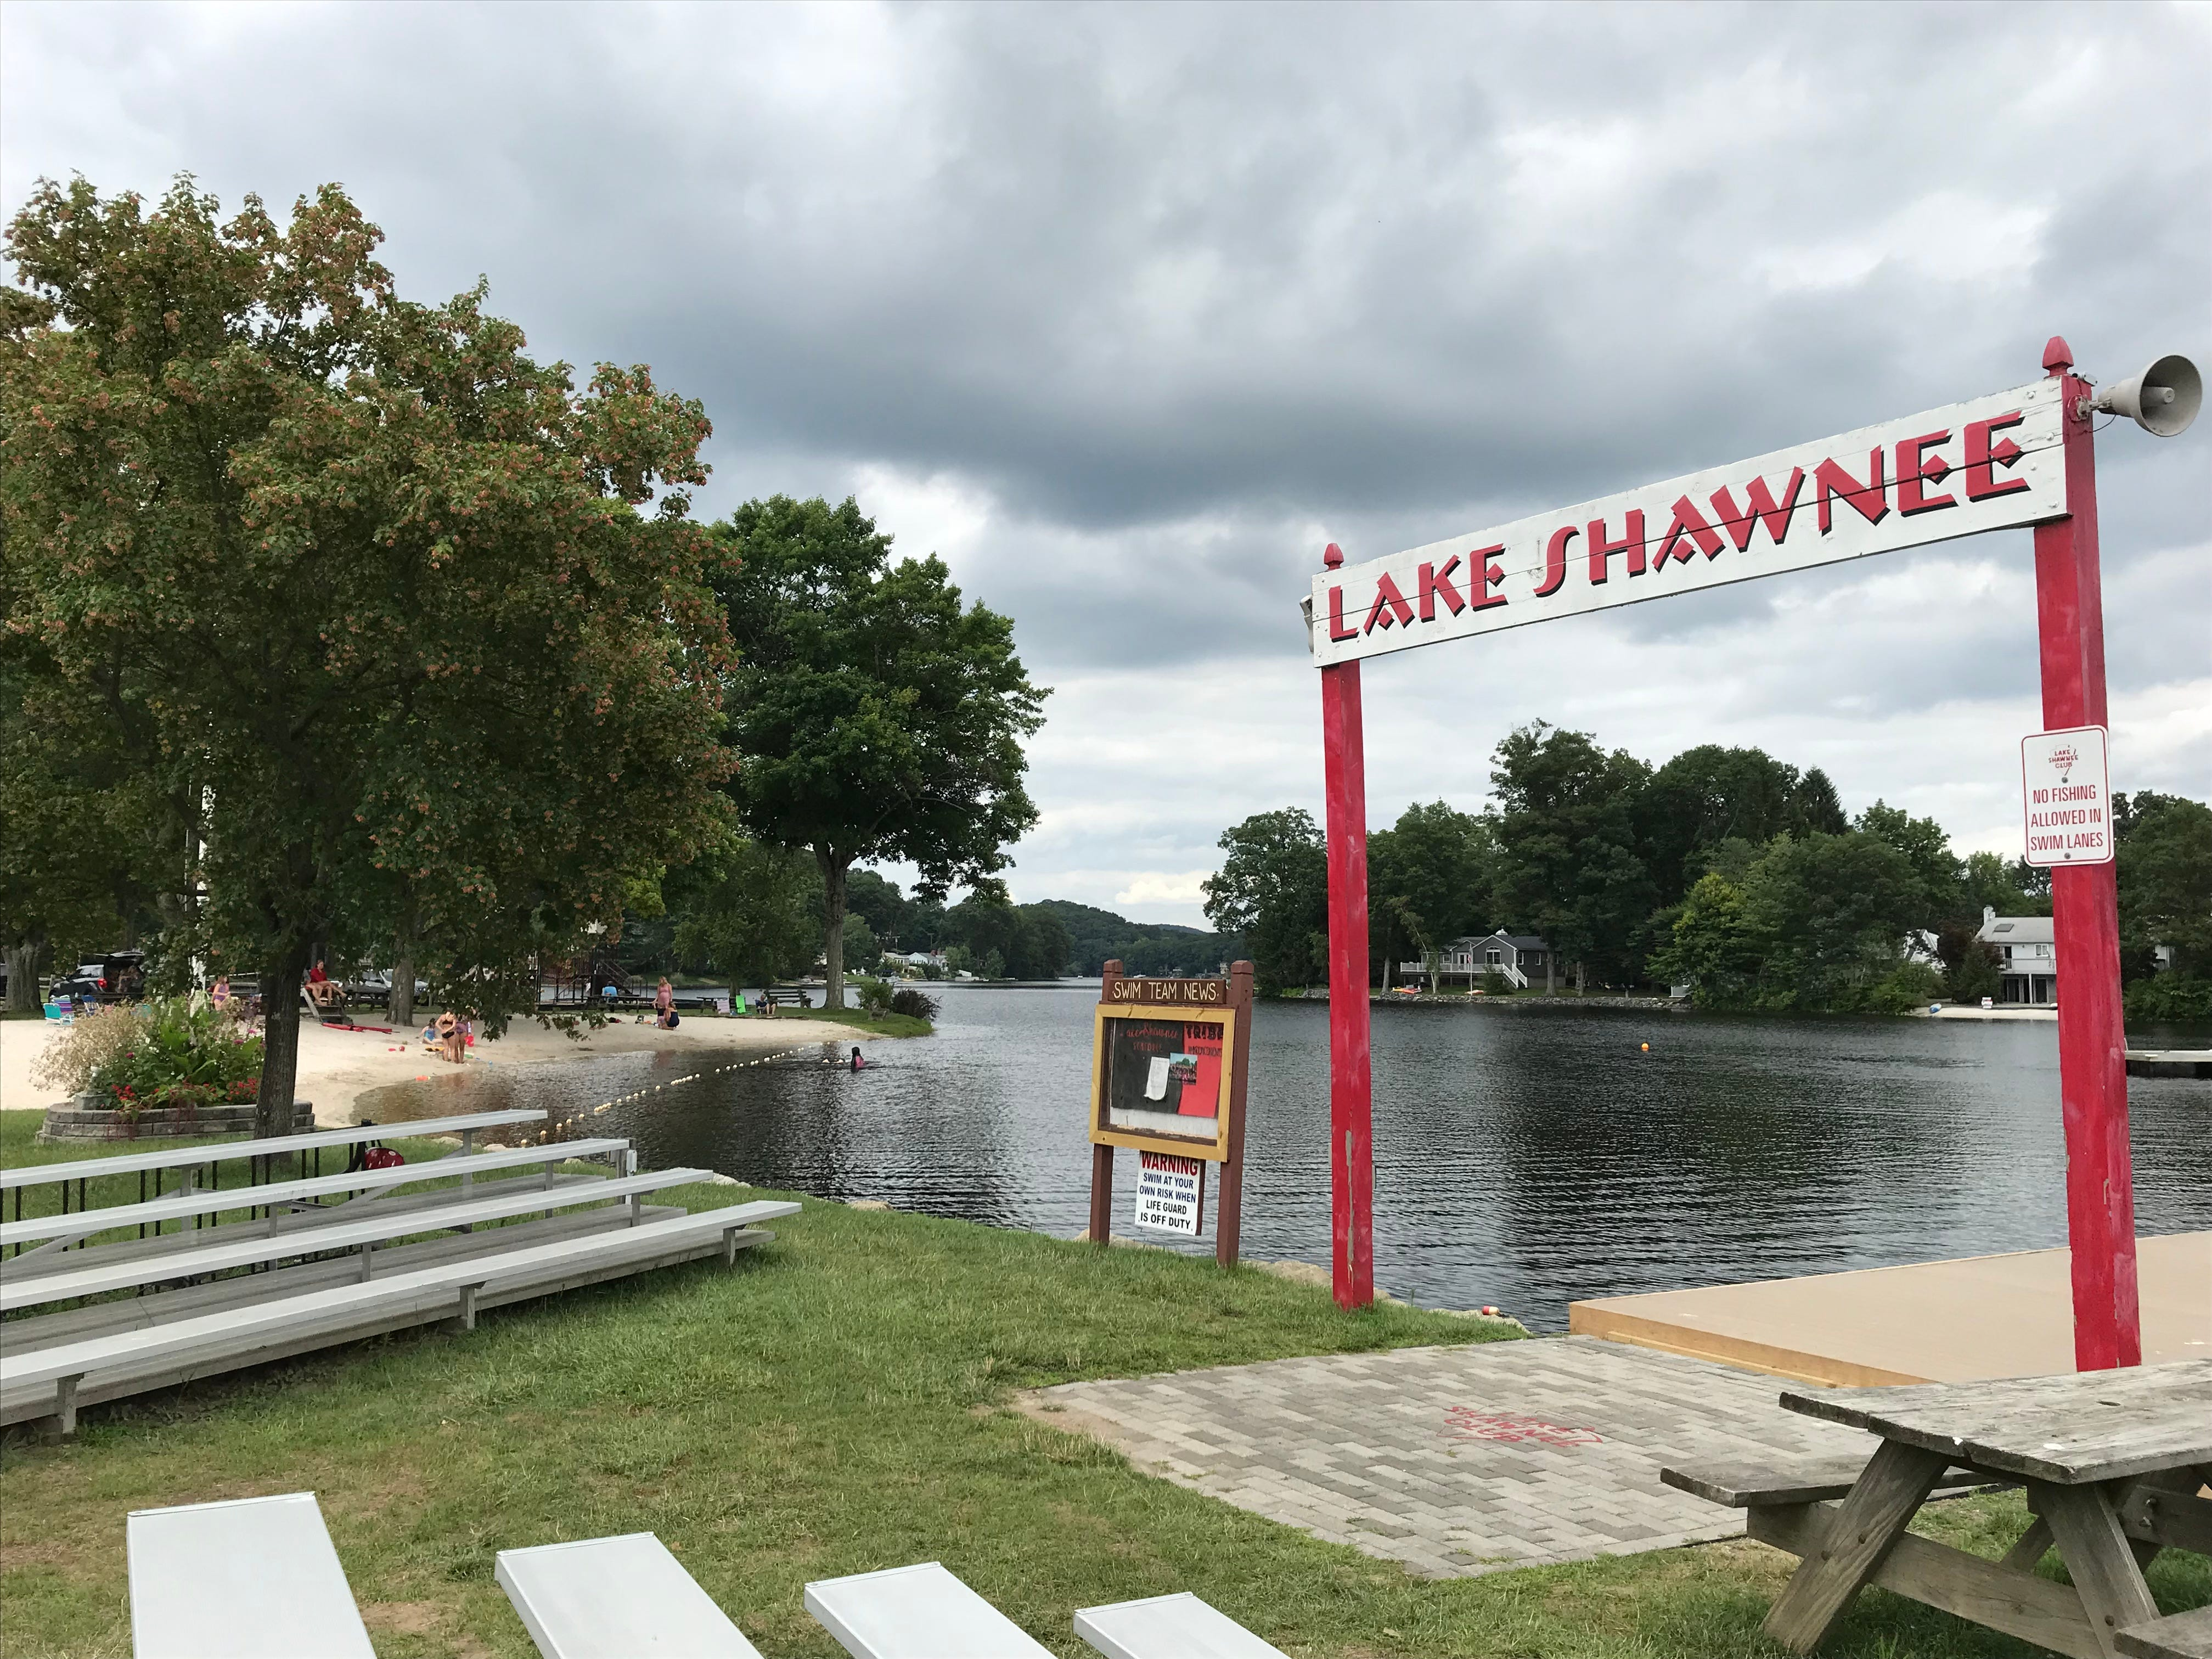 Lake Shawnee in Jefferson Township, N.J., as seen on July 31, 2018, was developed in the late 1940s by the Arthur D. Crane Company as a rustic private lake community.